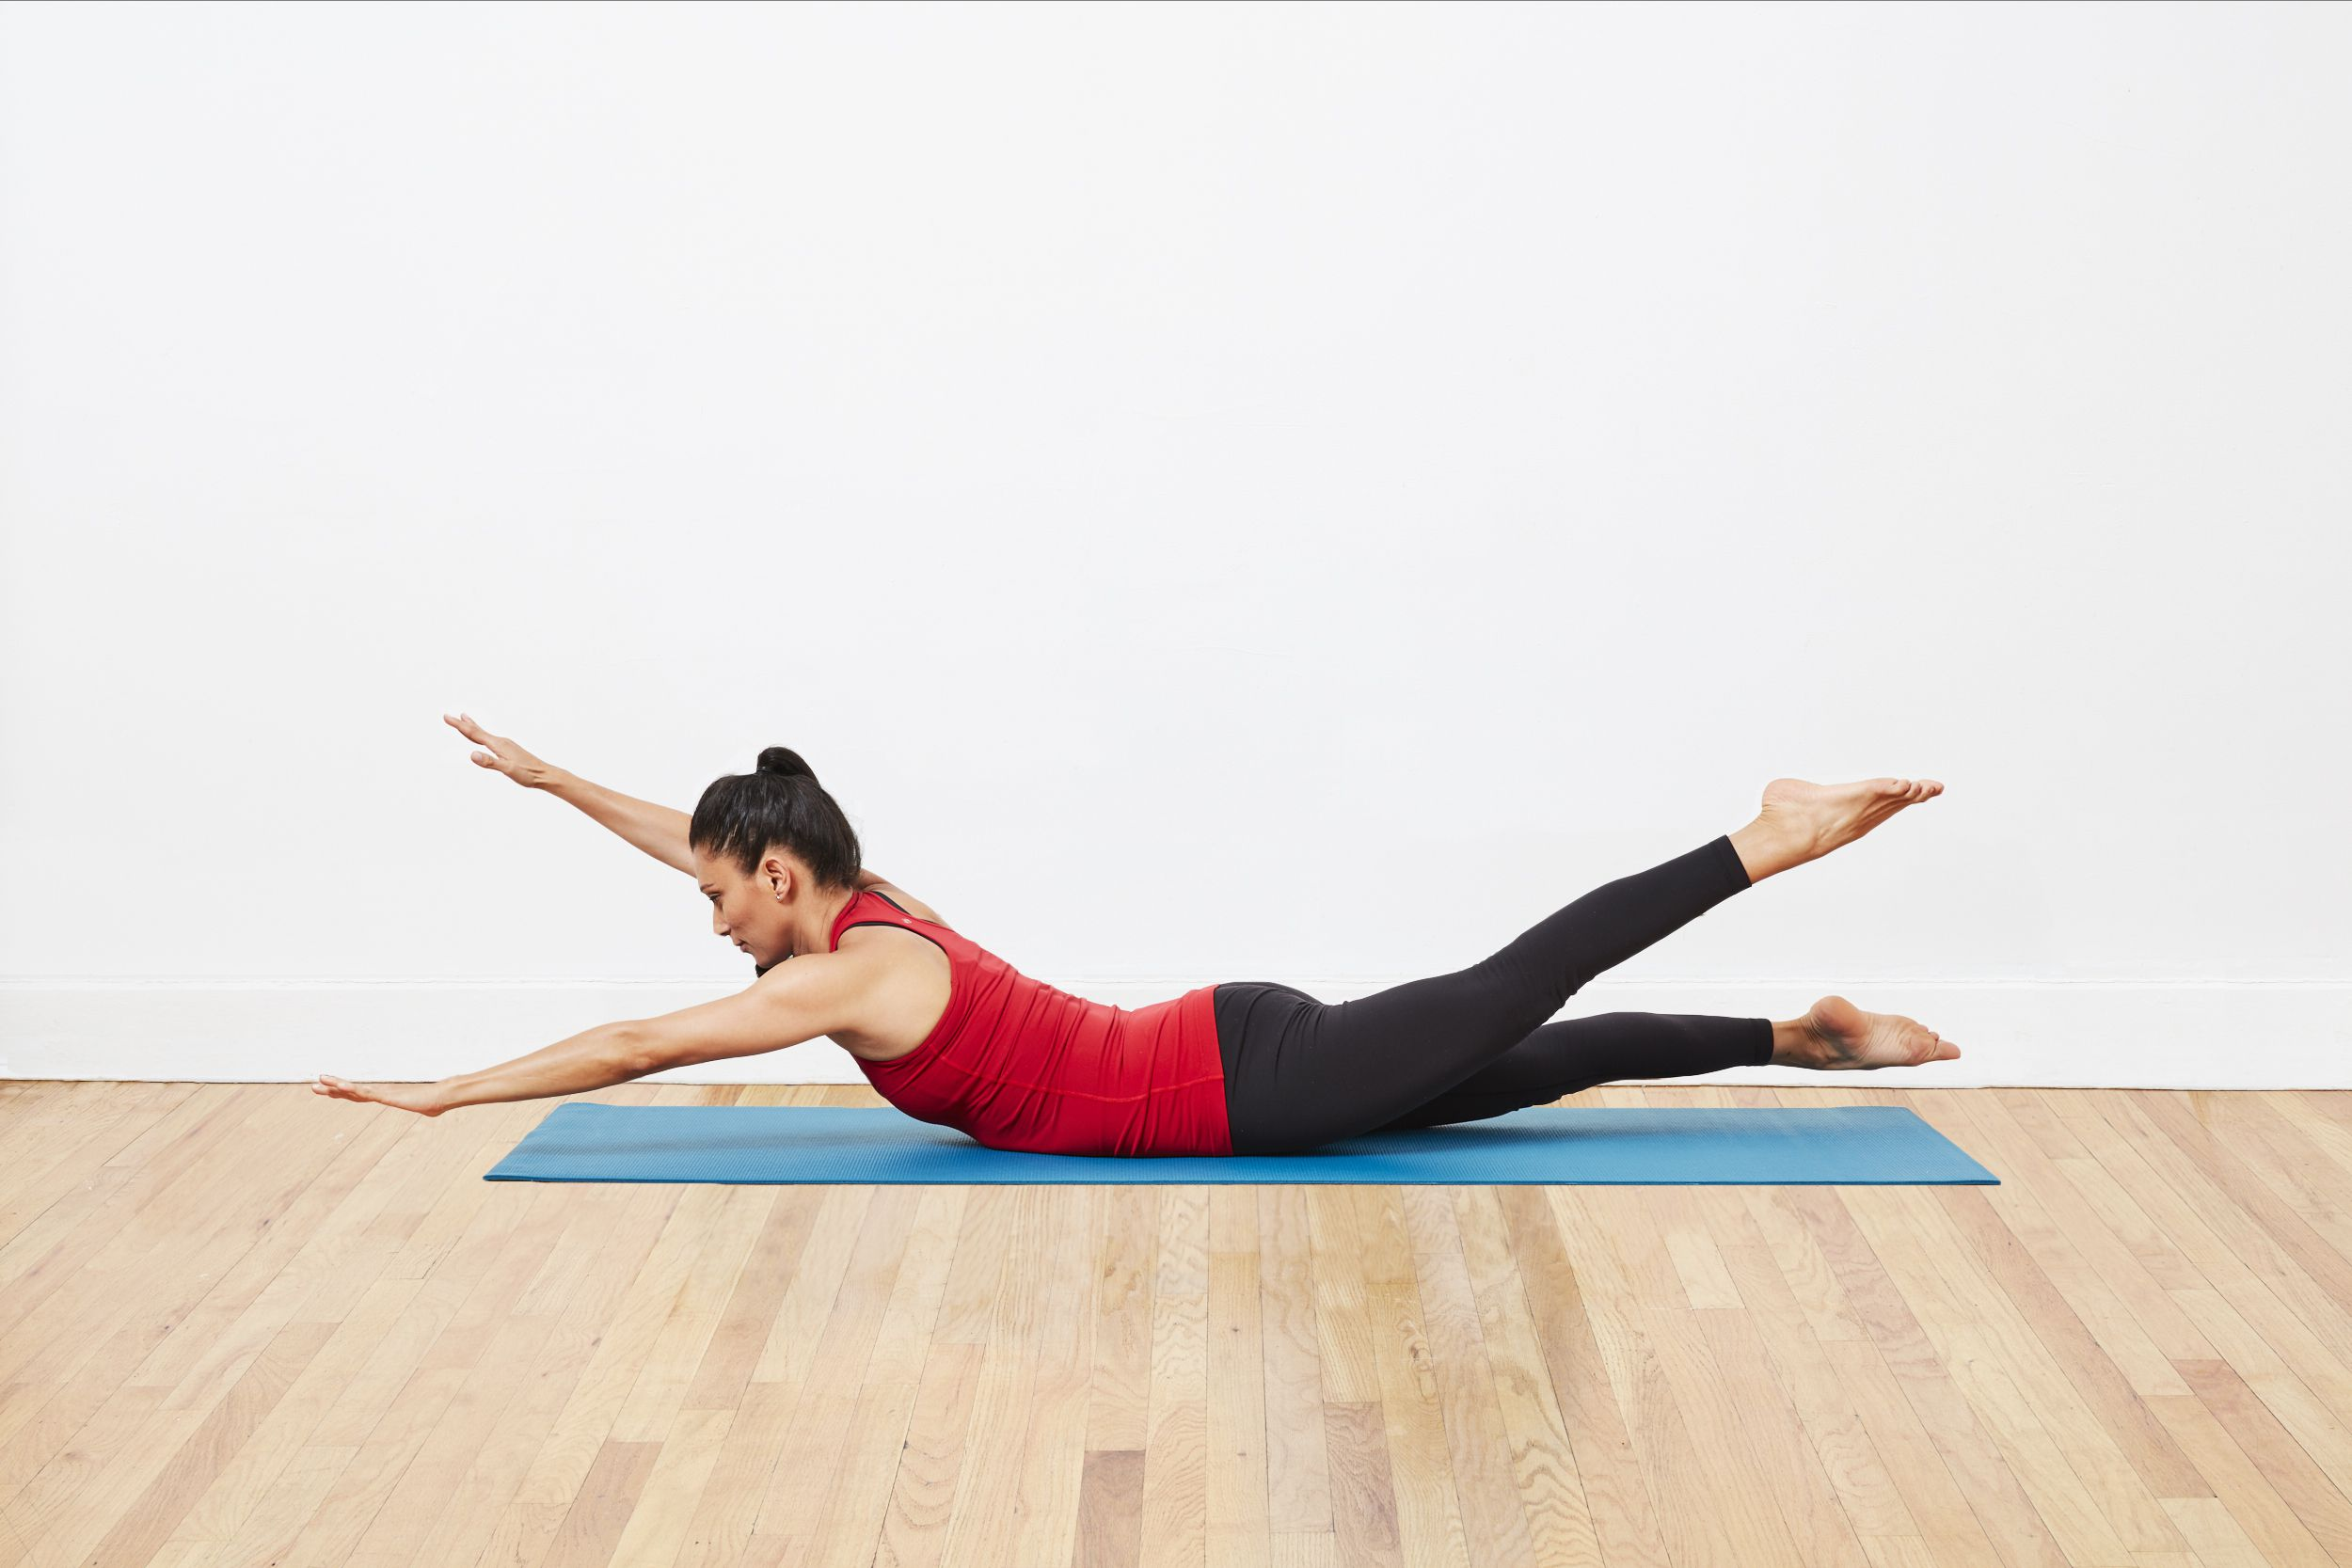 How to Do Swimming in Pilates